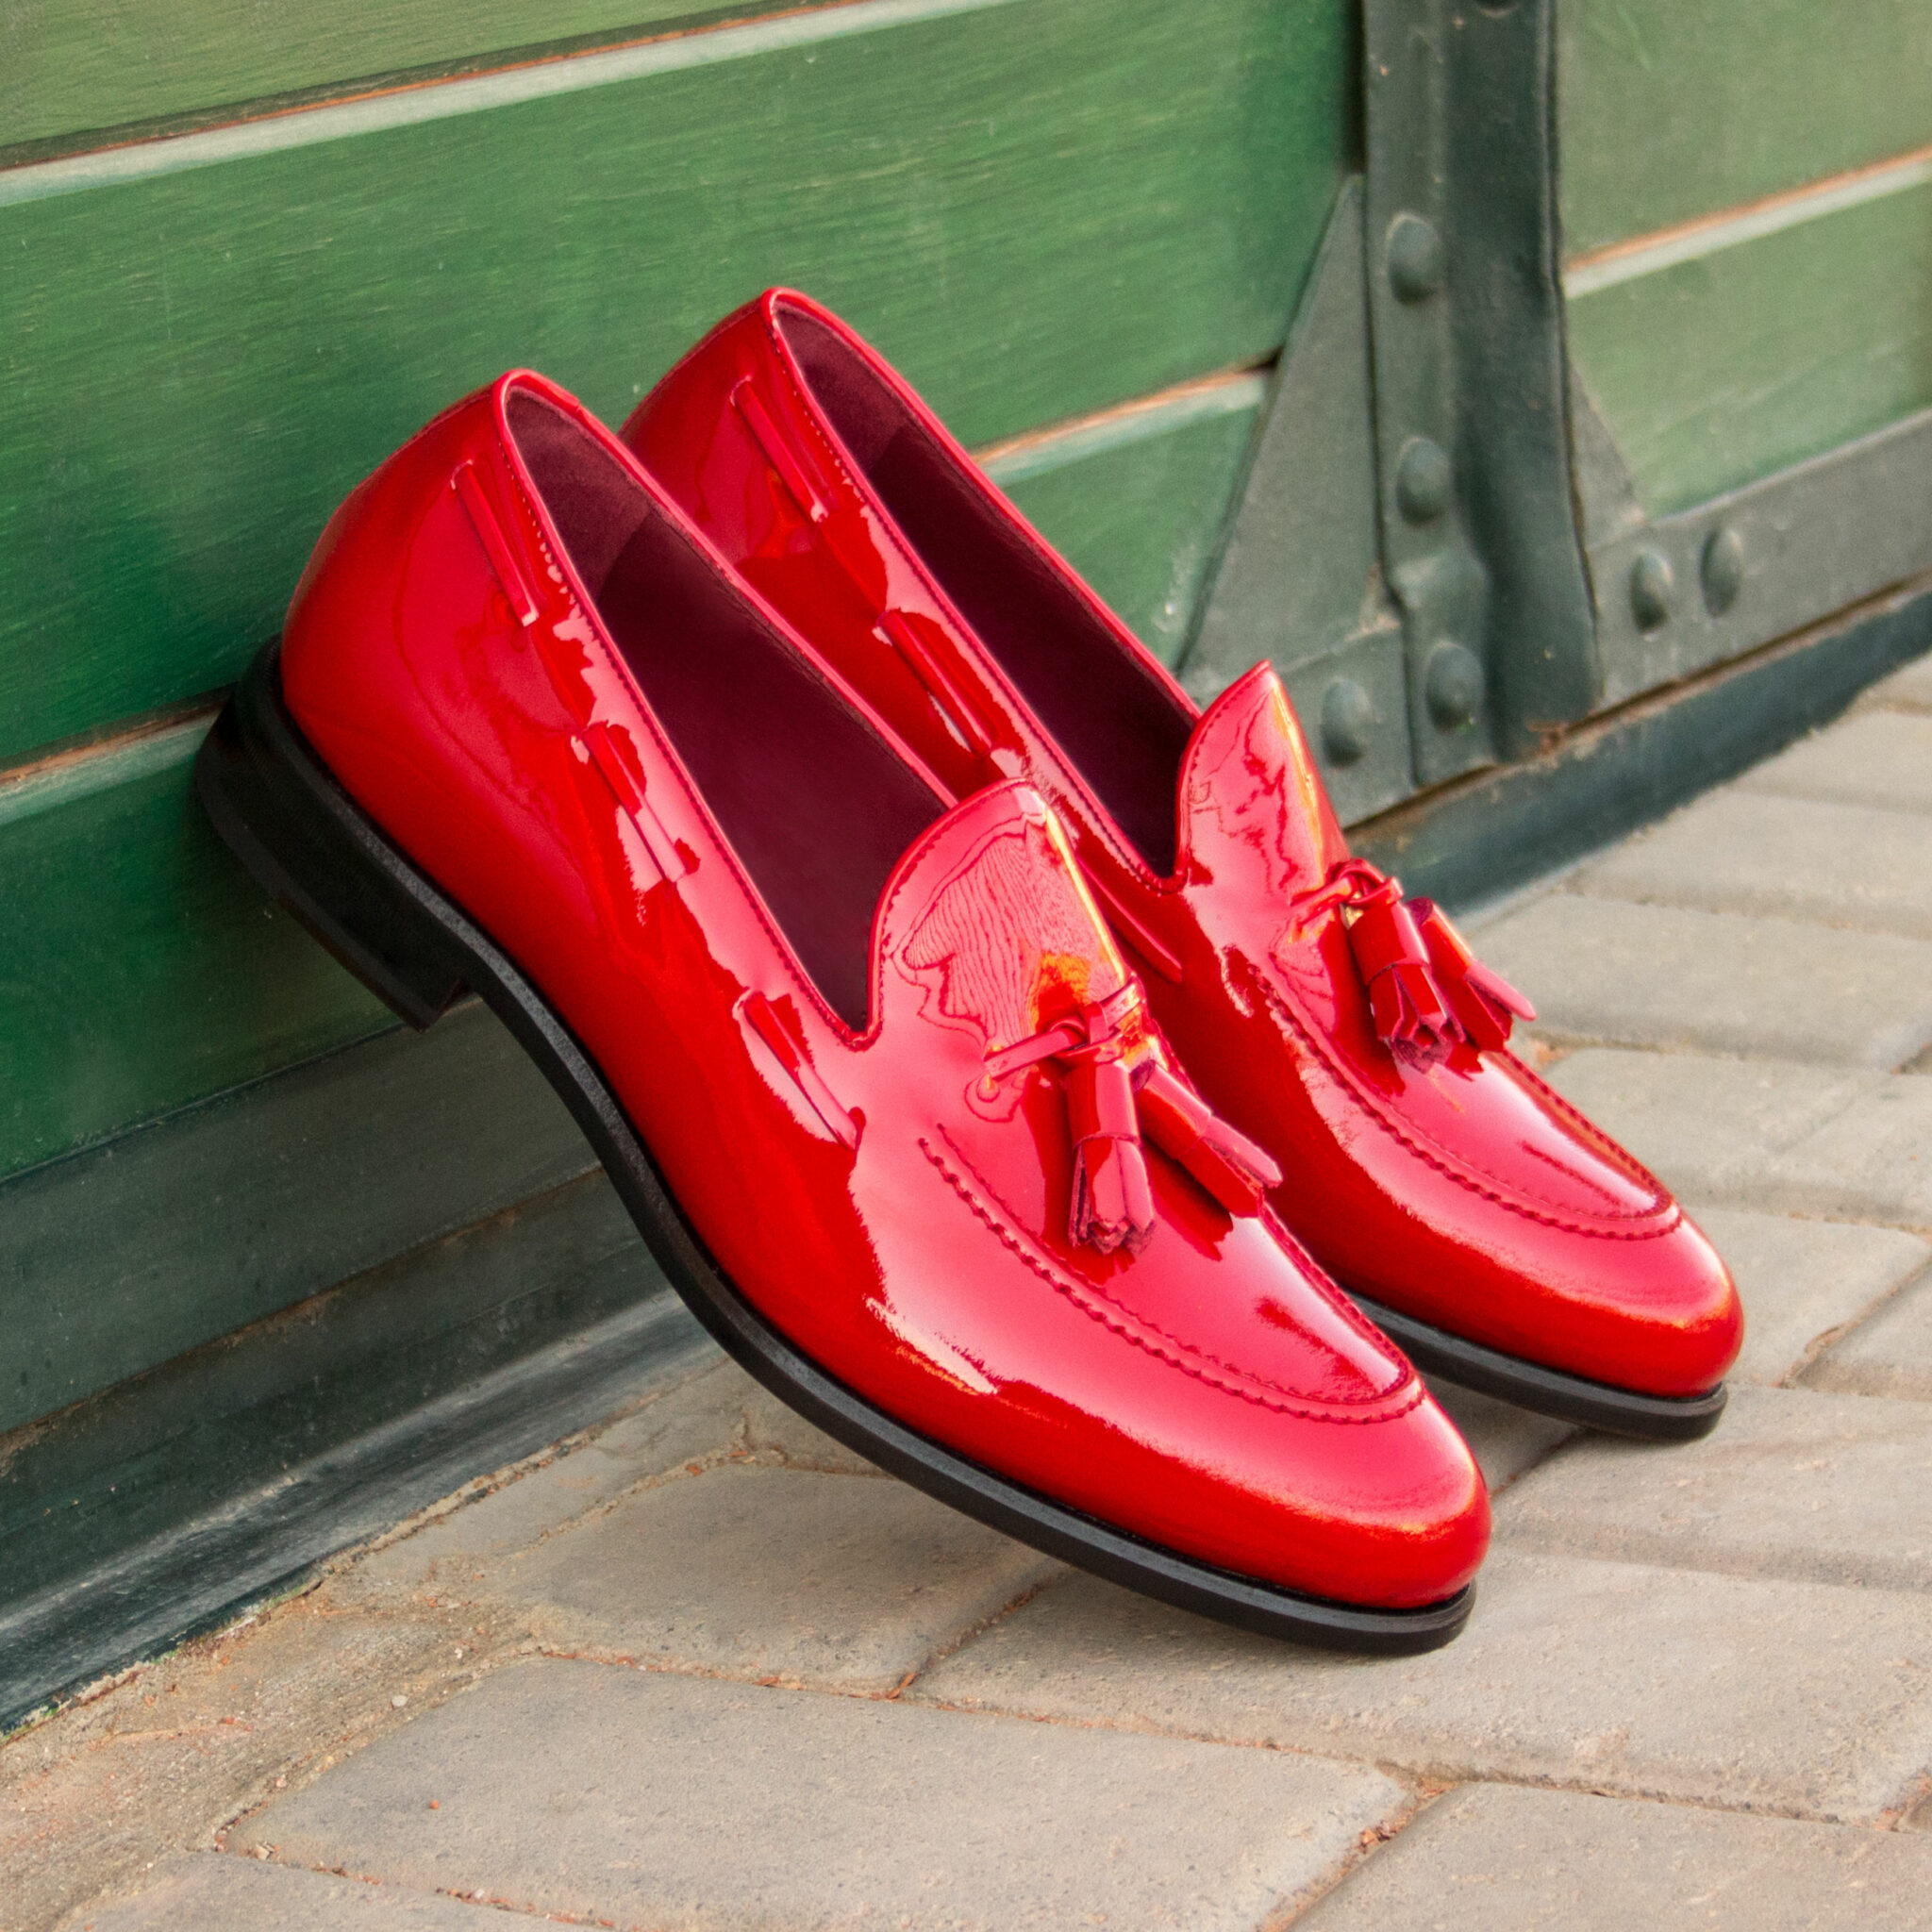 Loafer red patent : 240€